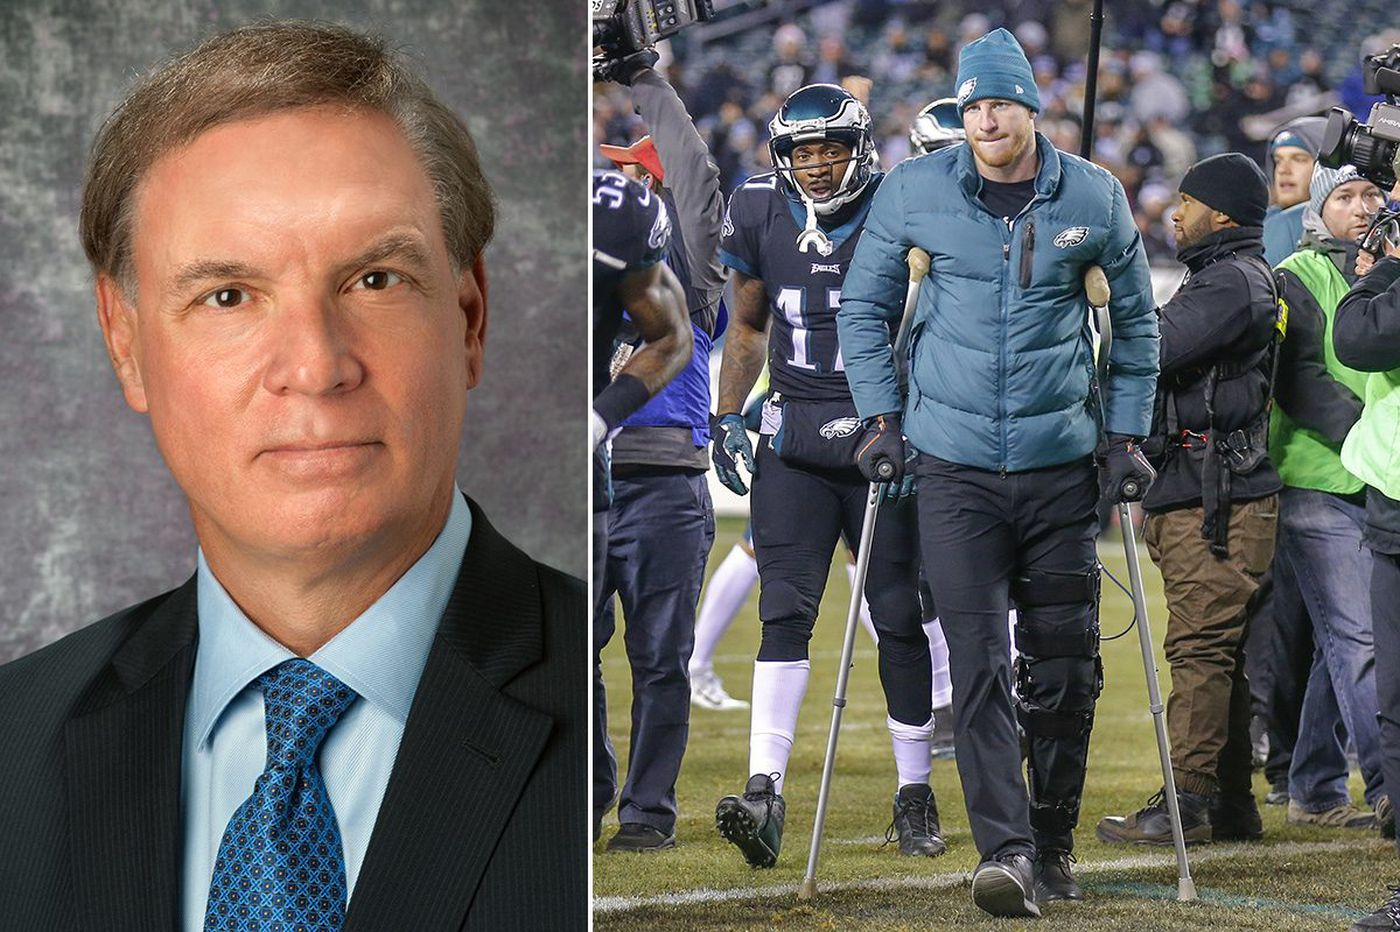 Carson Wentz's surgeon, James Bradley, is an innovator well-known for work with athletes